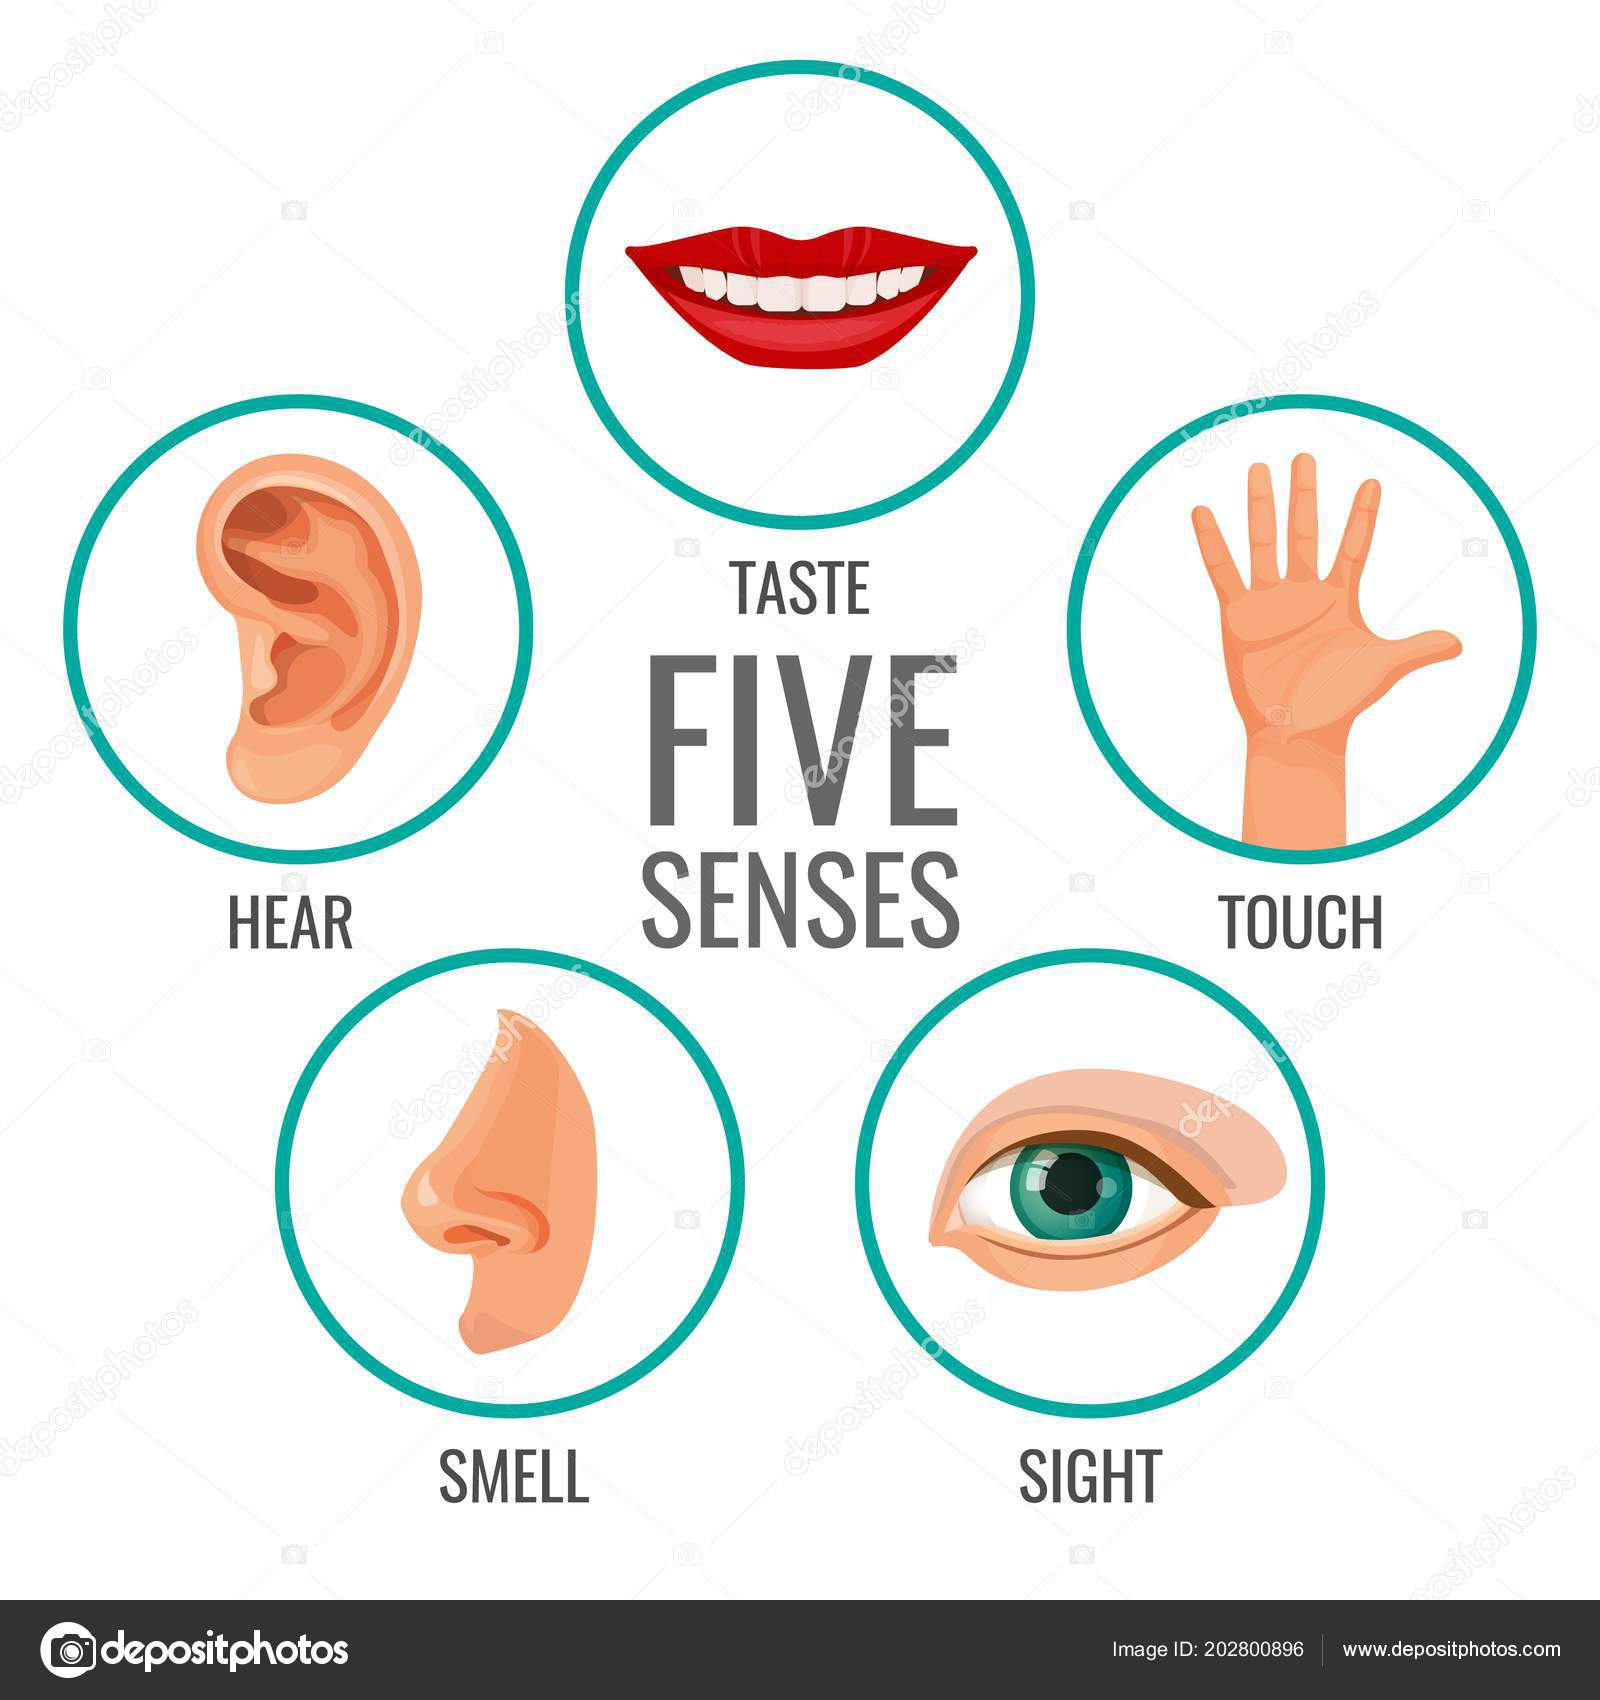 Other Than The Basic Five Senses Human Also Has Senses Such As